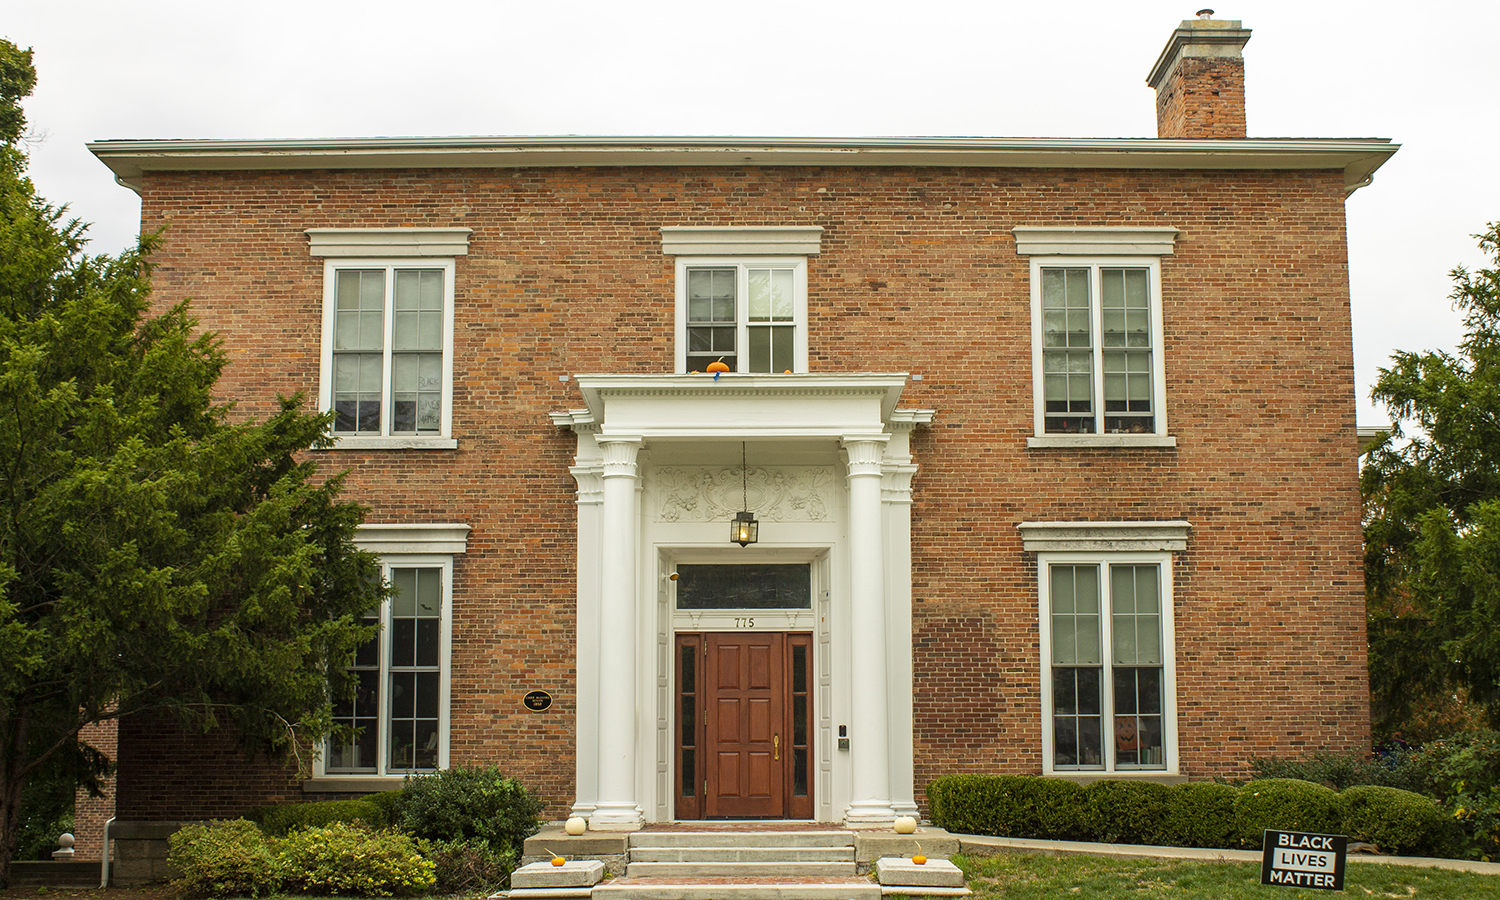 Located at 775 S. Main Street, Carr McGuire House is home to the Meditation House.